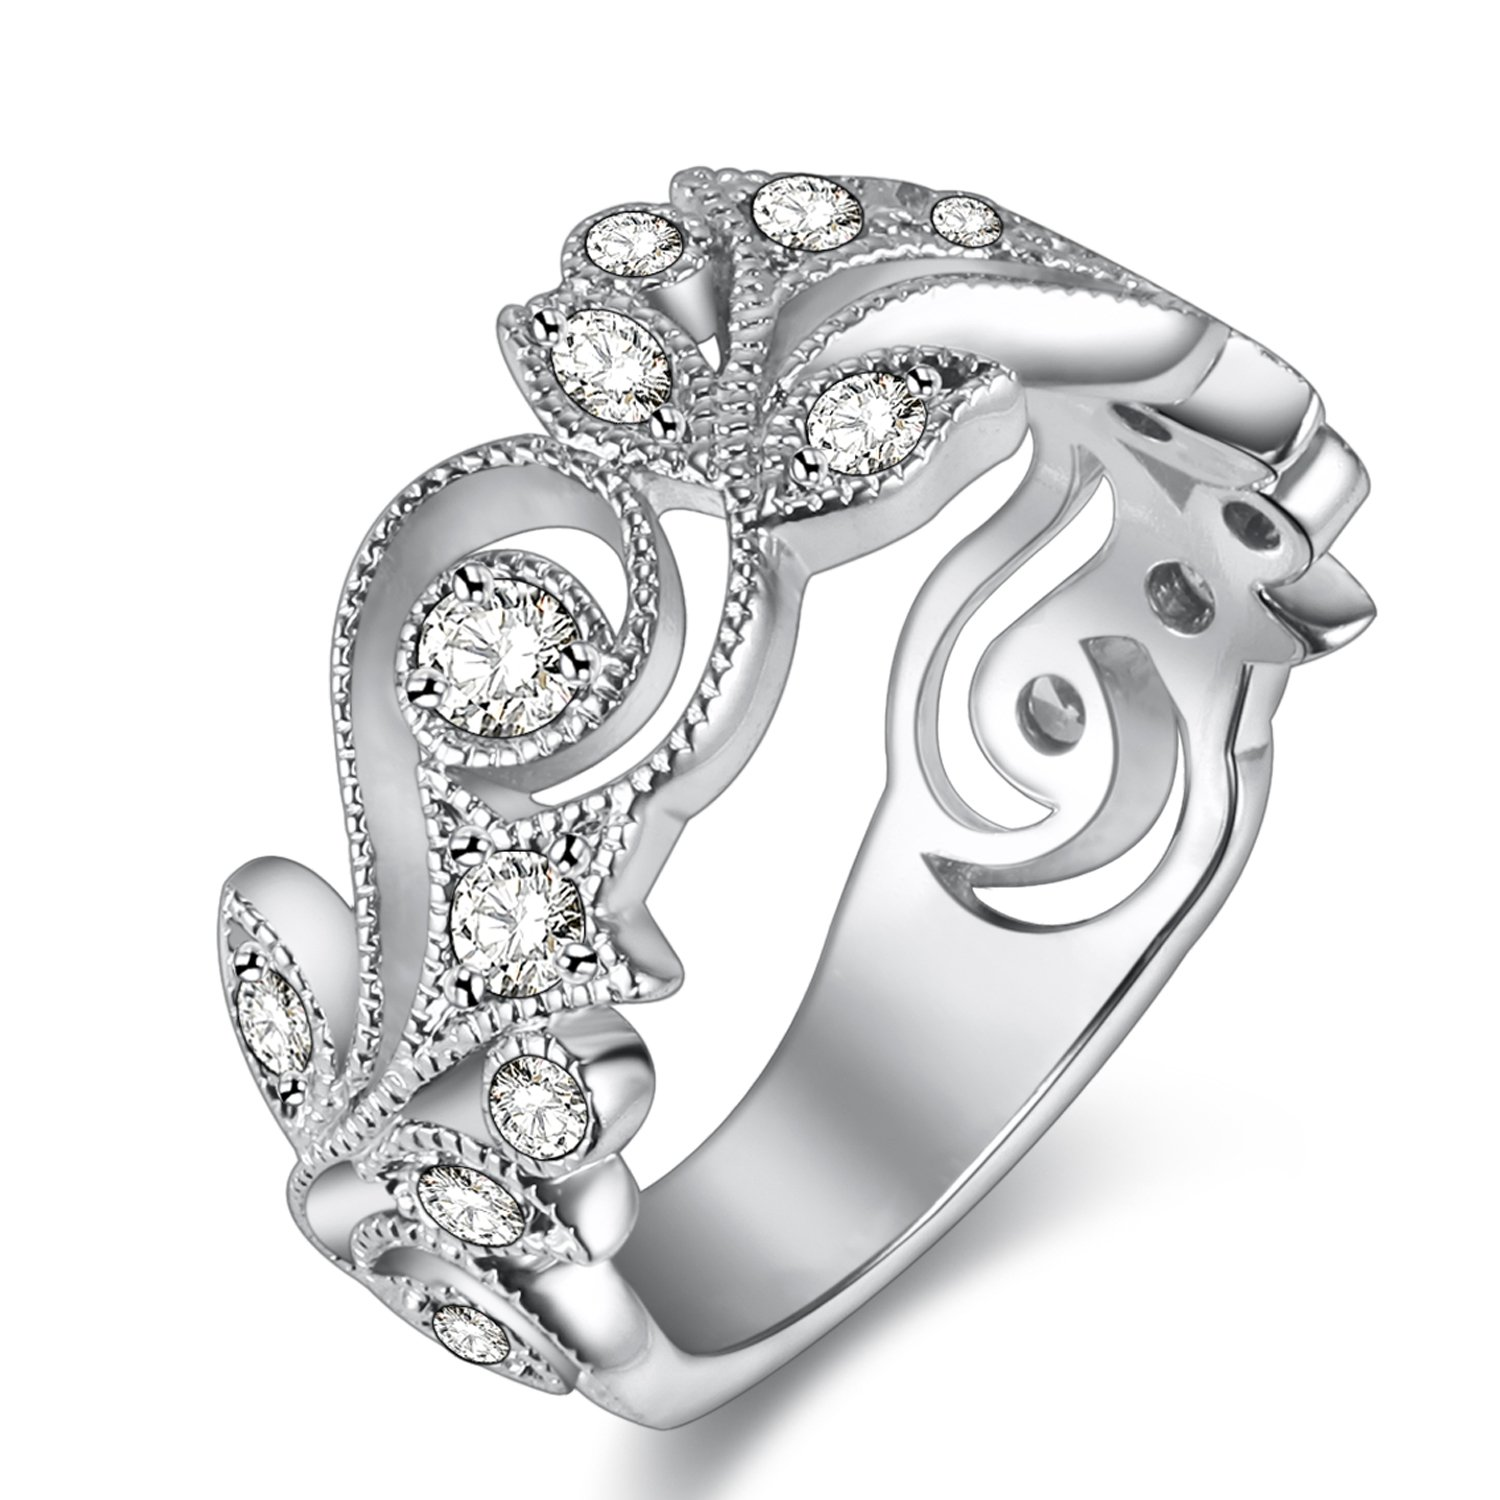 Newshe Jewellery Flower Wedding Band Eternity Ring Engagement 925 Sterling Silver White AAA Cz 10